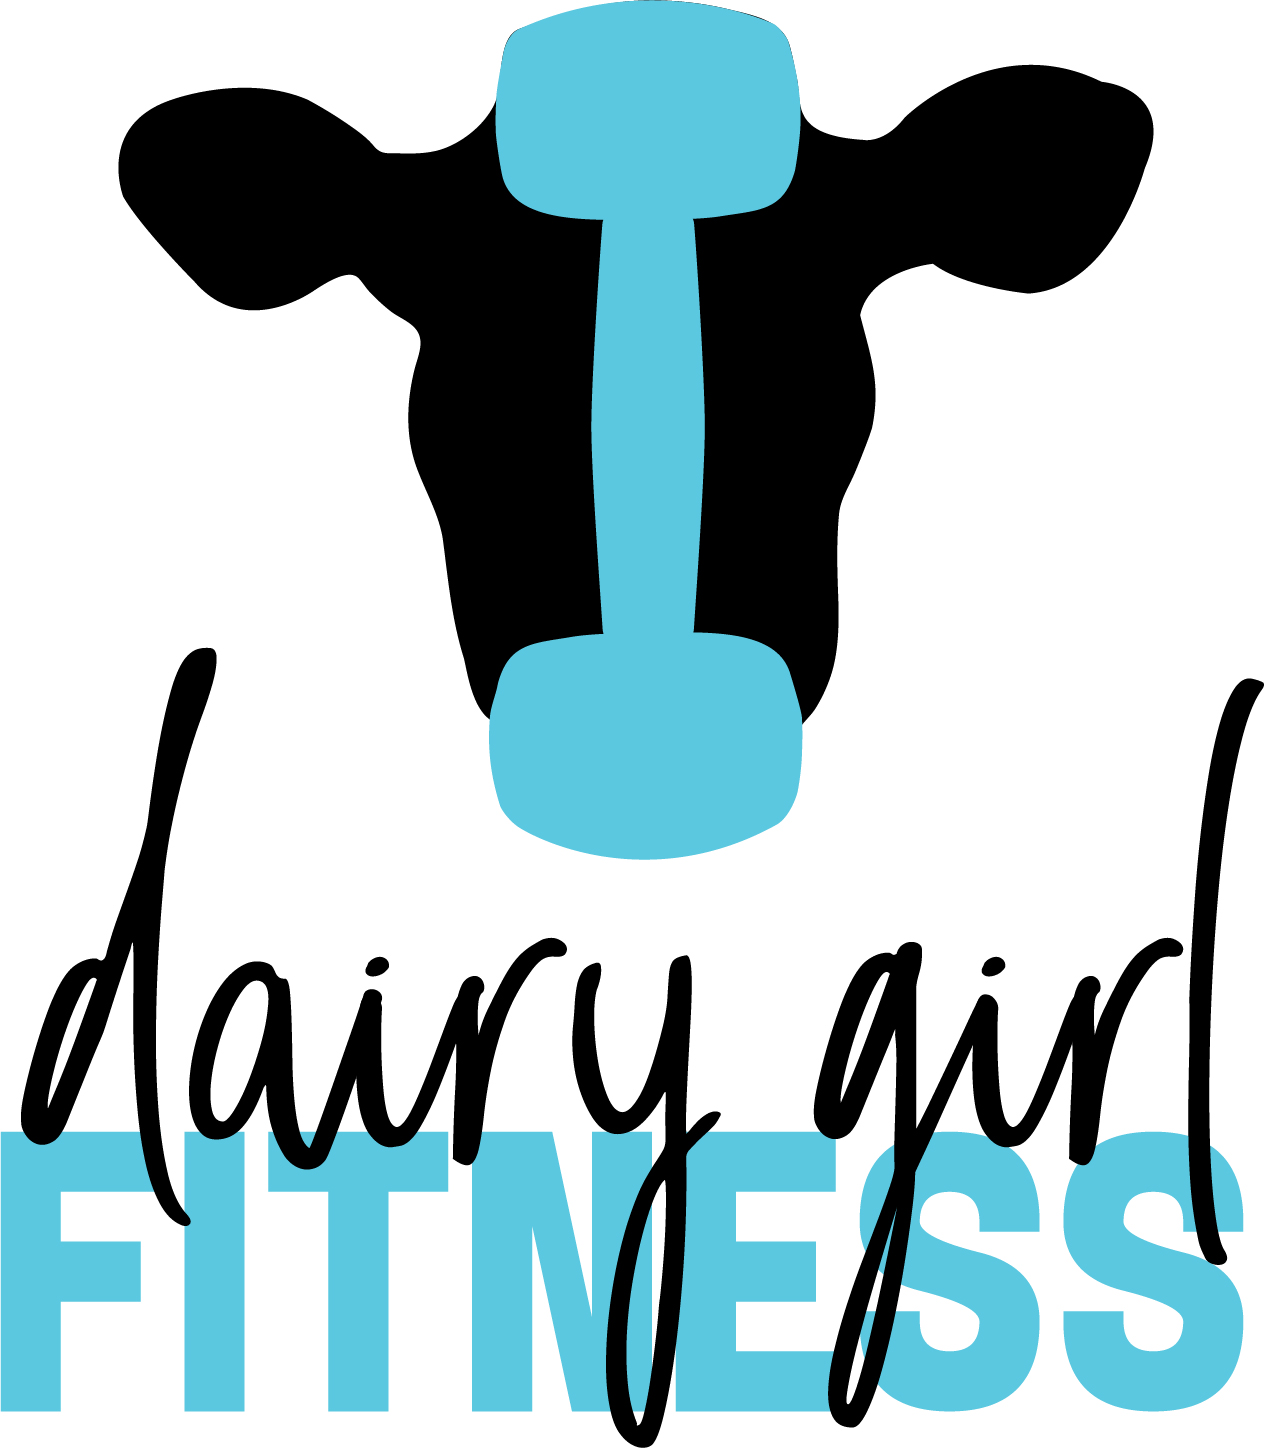 The Final logo for Dairy Girl Fitness